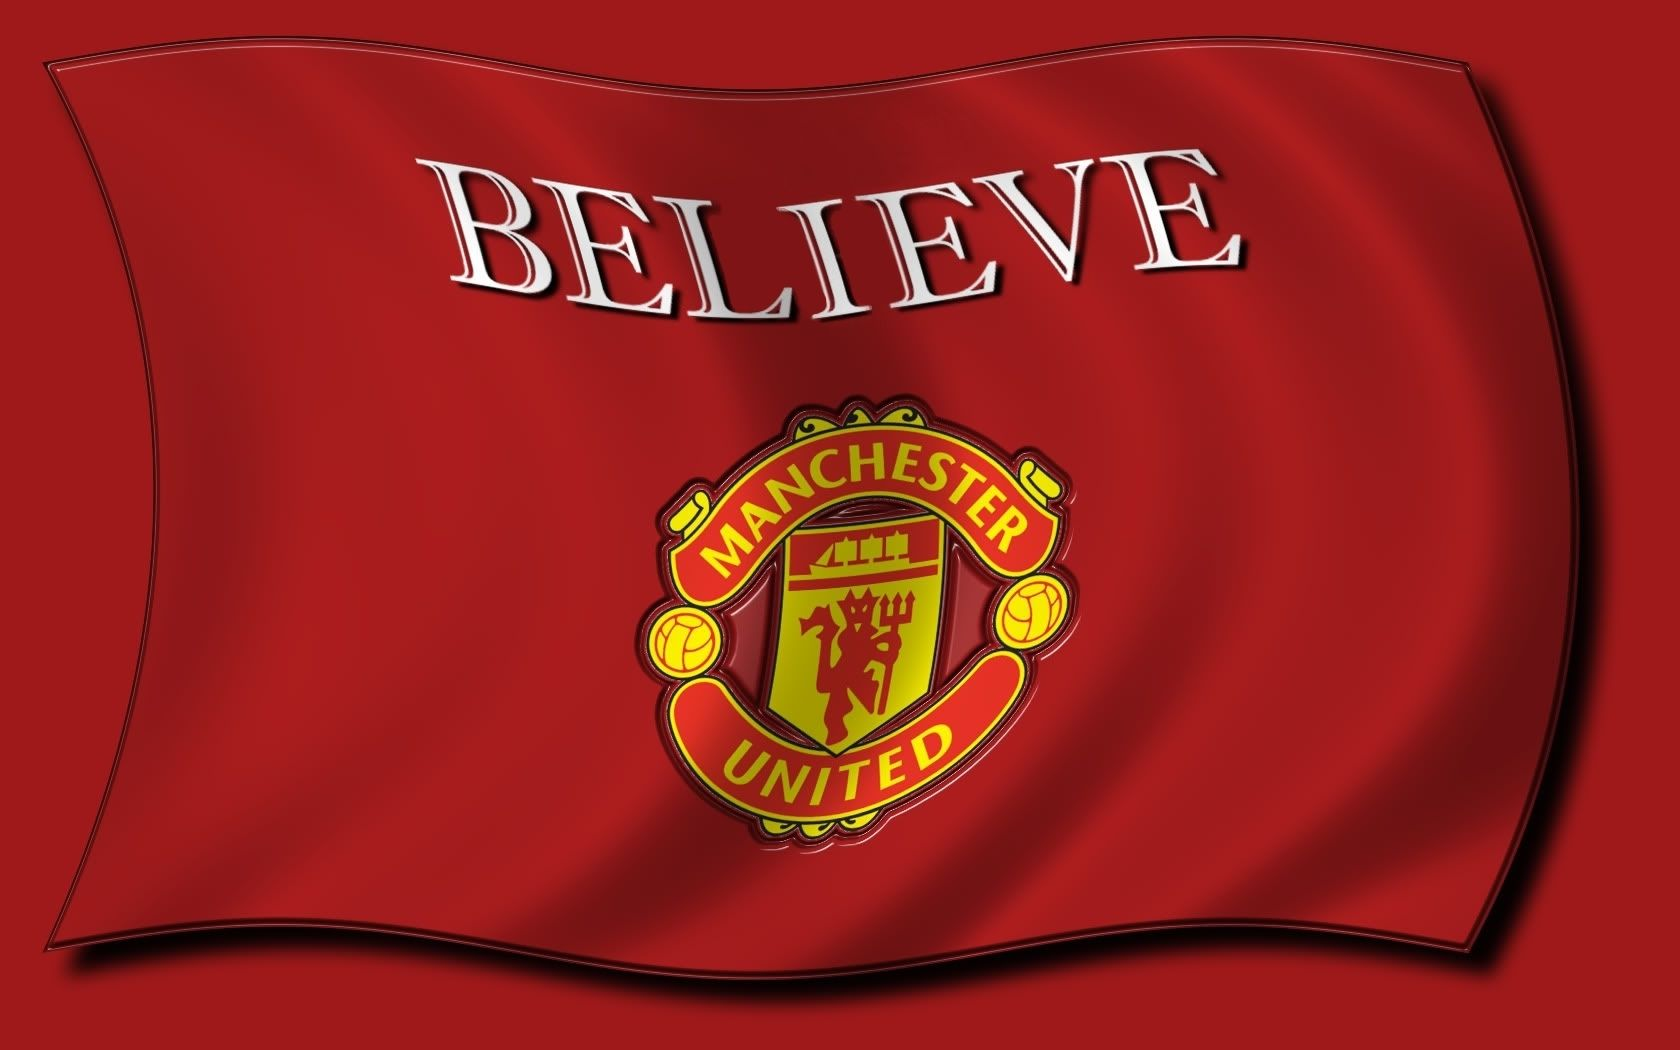 Manchester United Believe   Manchester united wallpaper ...